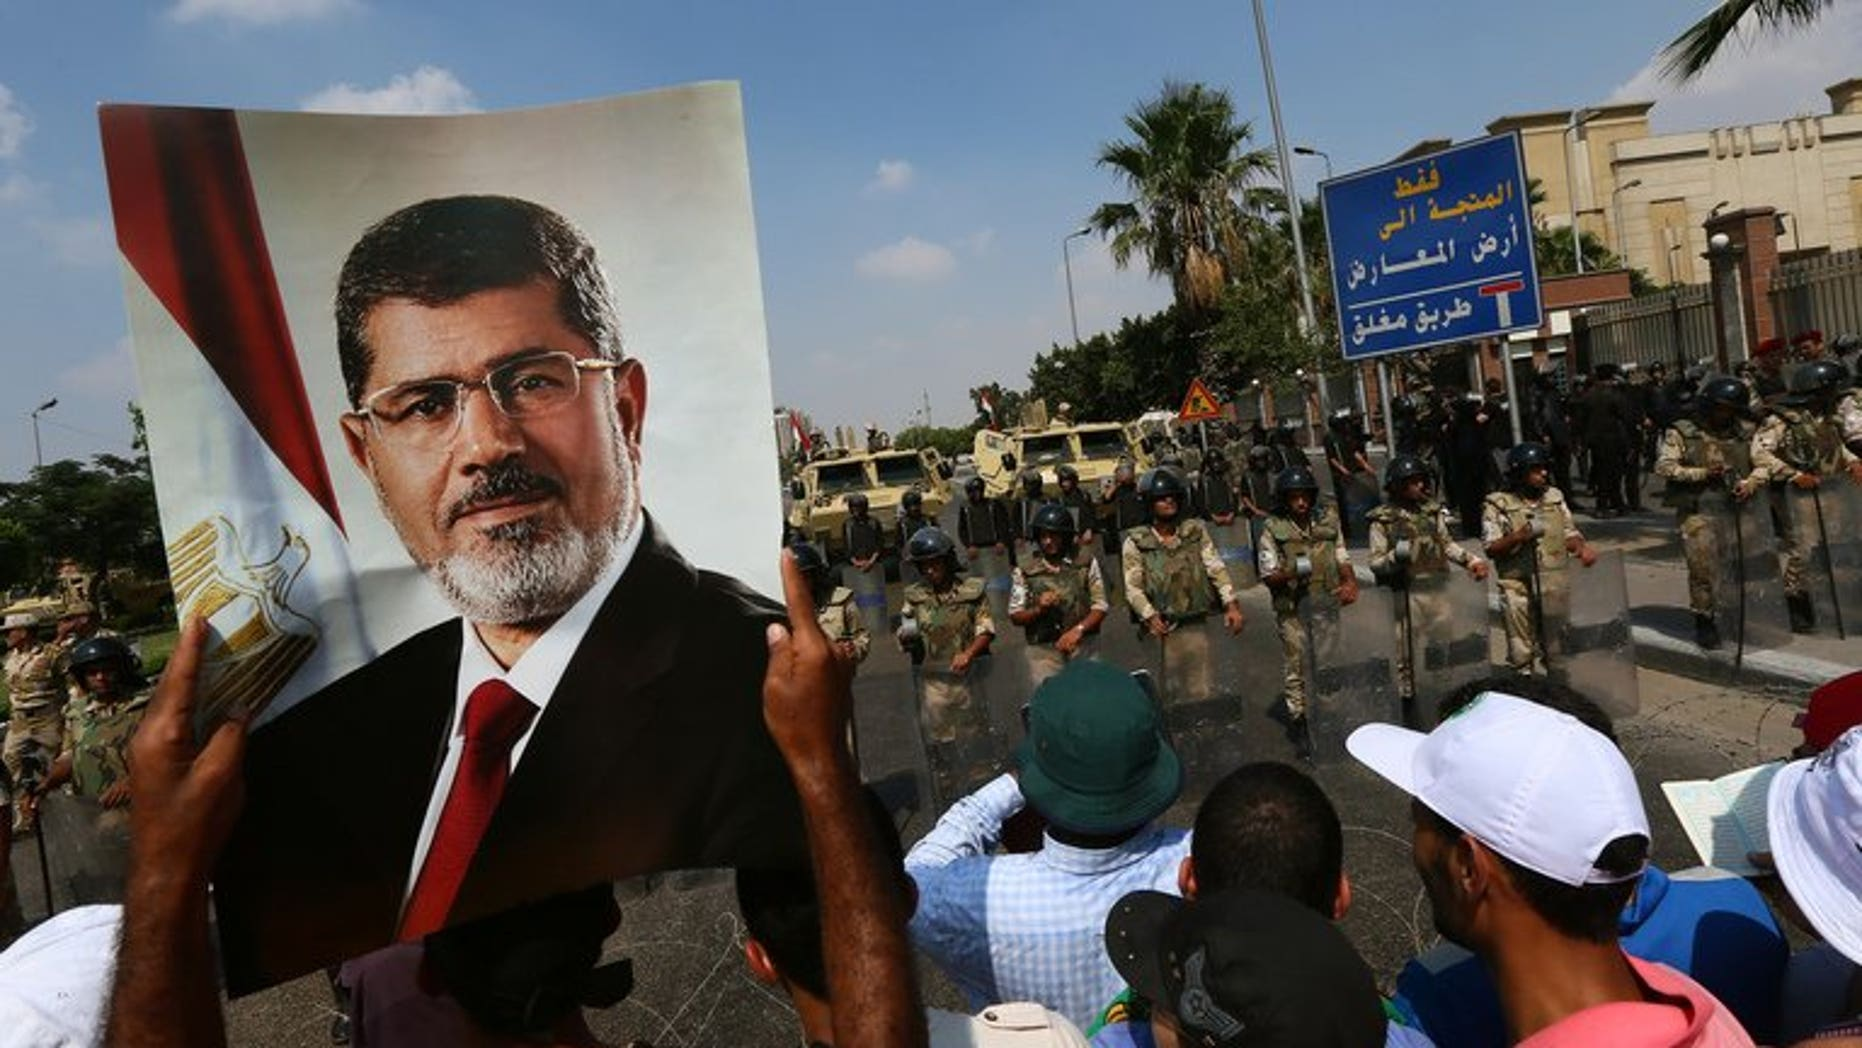 A supporter of ousted Egyptian president Mohamed Morsi holds a picture of the toppled leader in Cairo, on July 19, 2013. An Egyptian prosecutor has levelled new accusations against Mohamed Morsi, already facing trial on other charges, alleging the Islamist had insulted the country's judiciary when he was president, media reported.